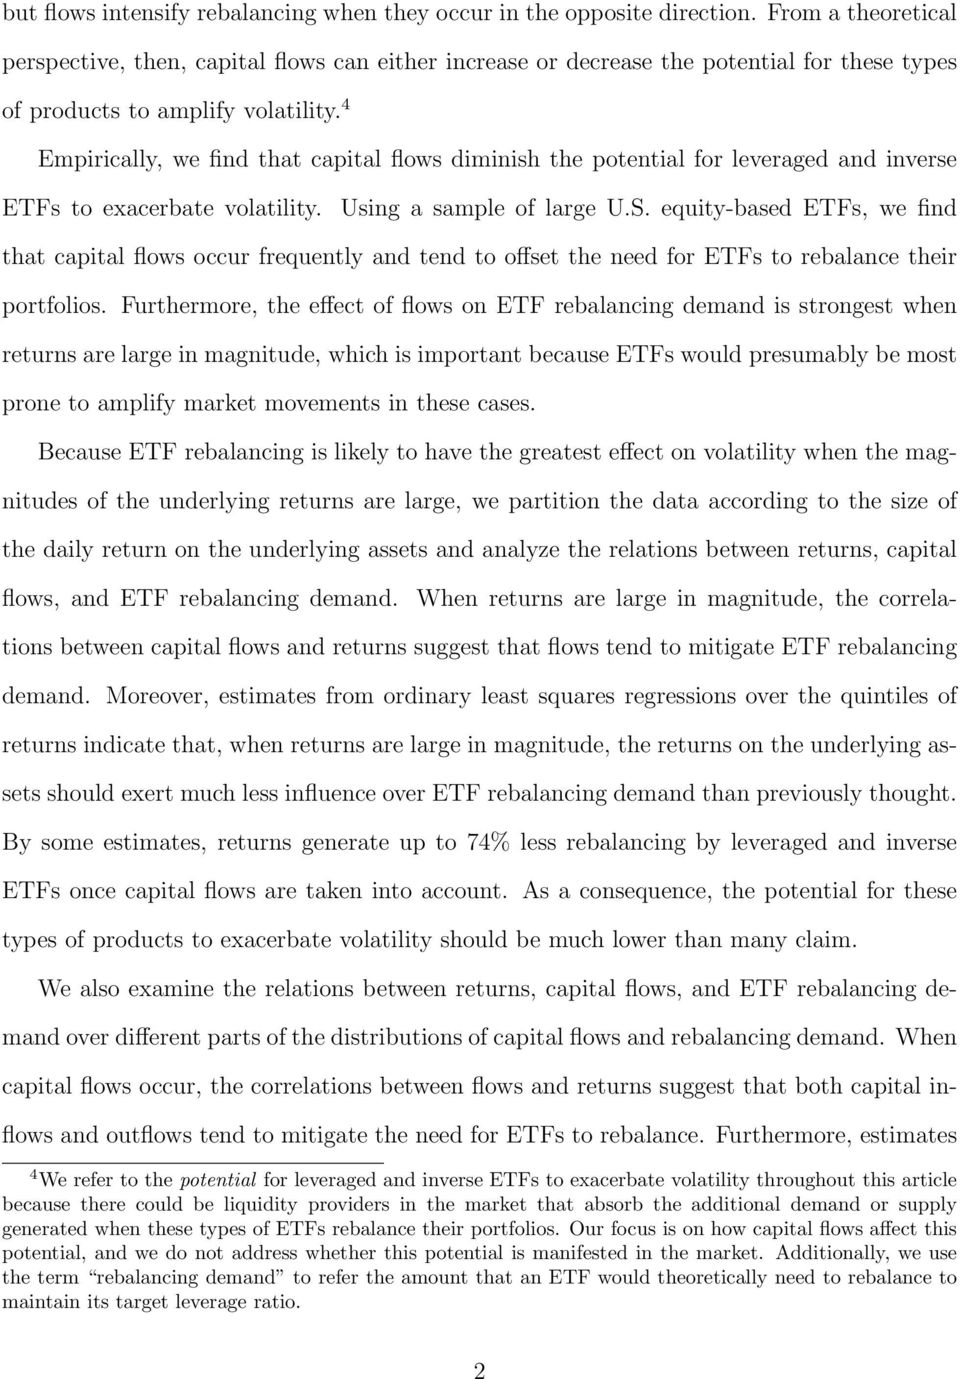 4 Empirically, we find that capital flows diminish the potential for leveraged and inverse ETFs to exacerbate volatility. Using a sample of large U.S.